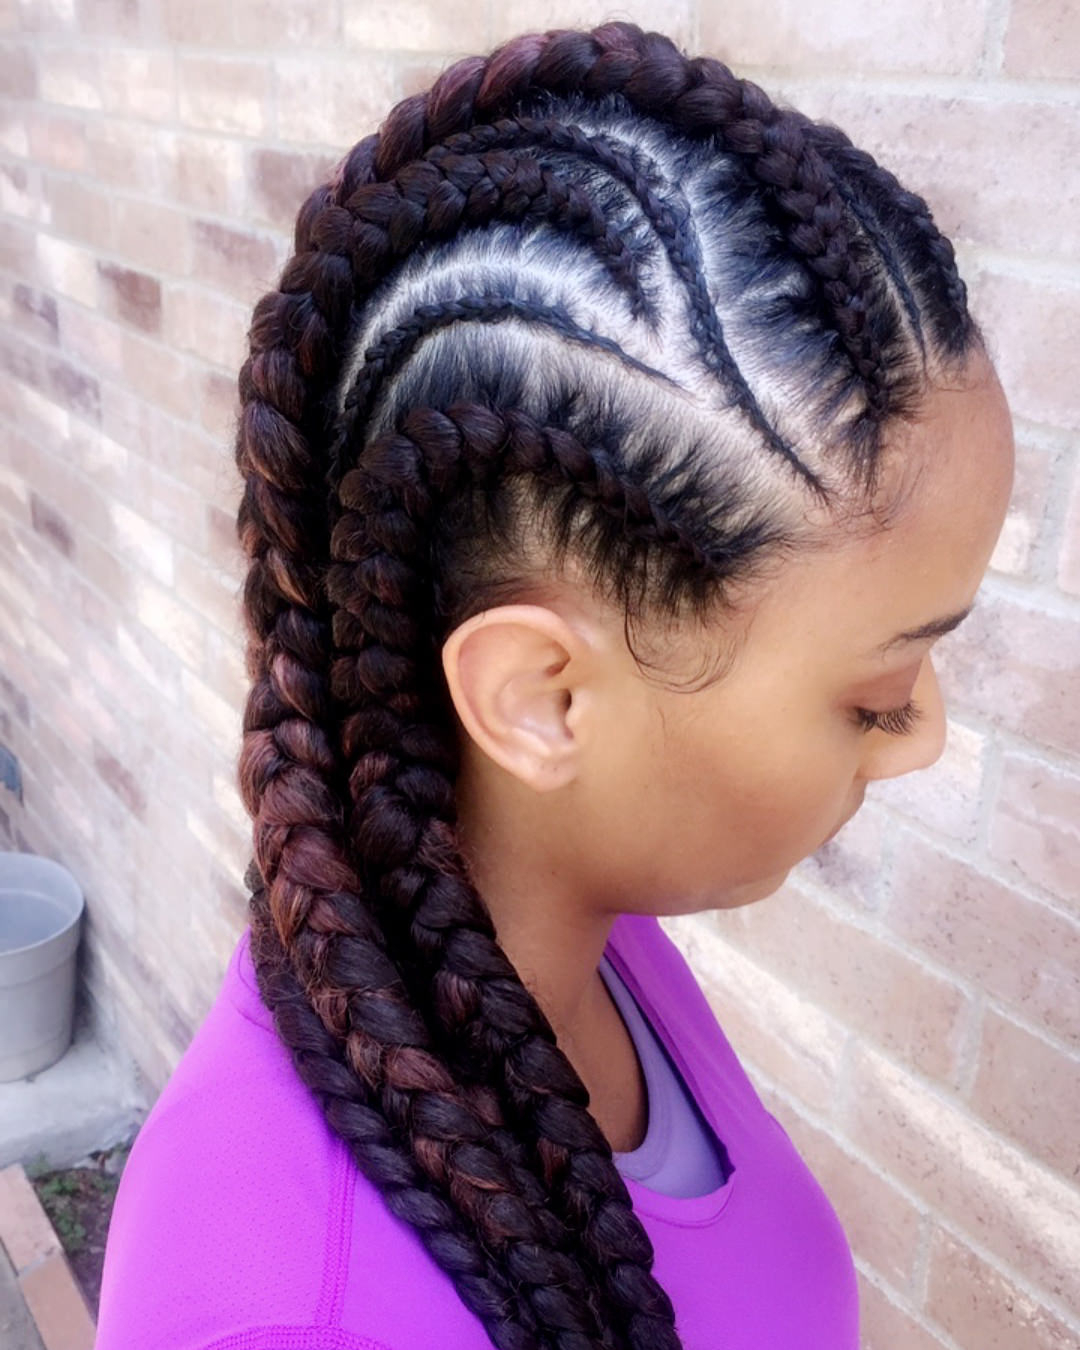 44 Twist Braids Hairstyles For Jaw Dropping Reactions! Within Famous Solo Braid Hairstyles (View 11 of 20)